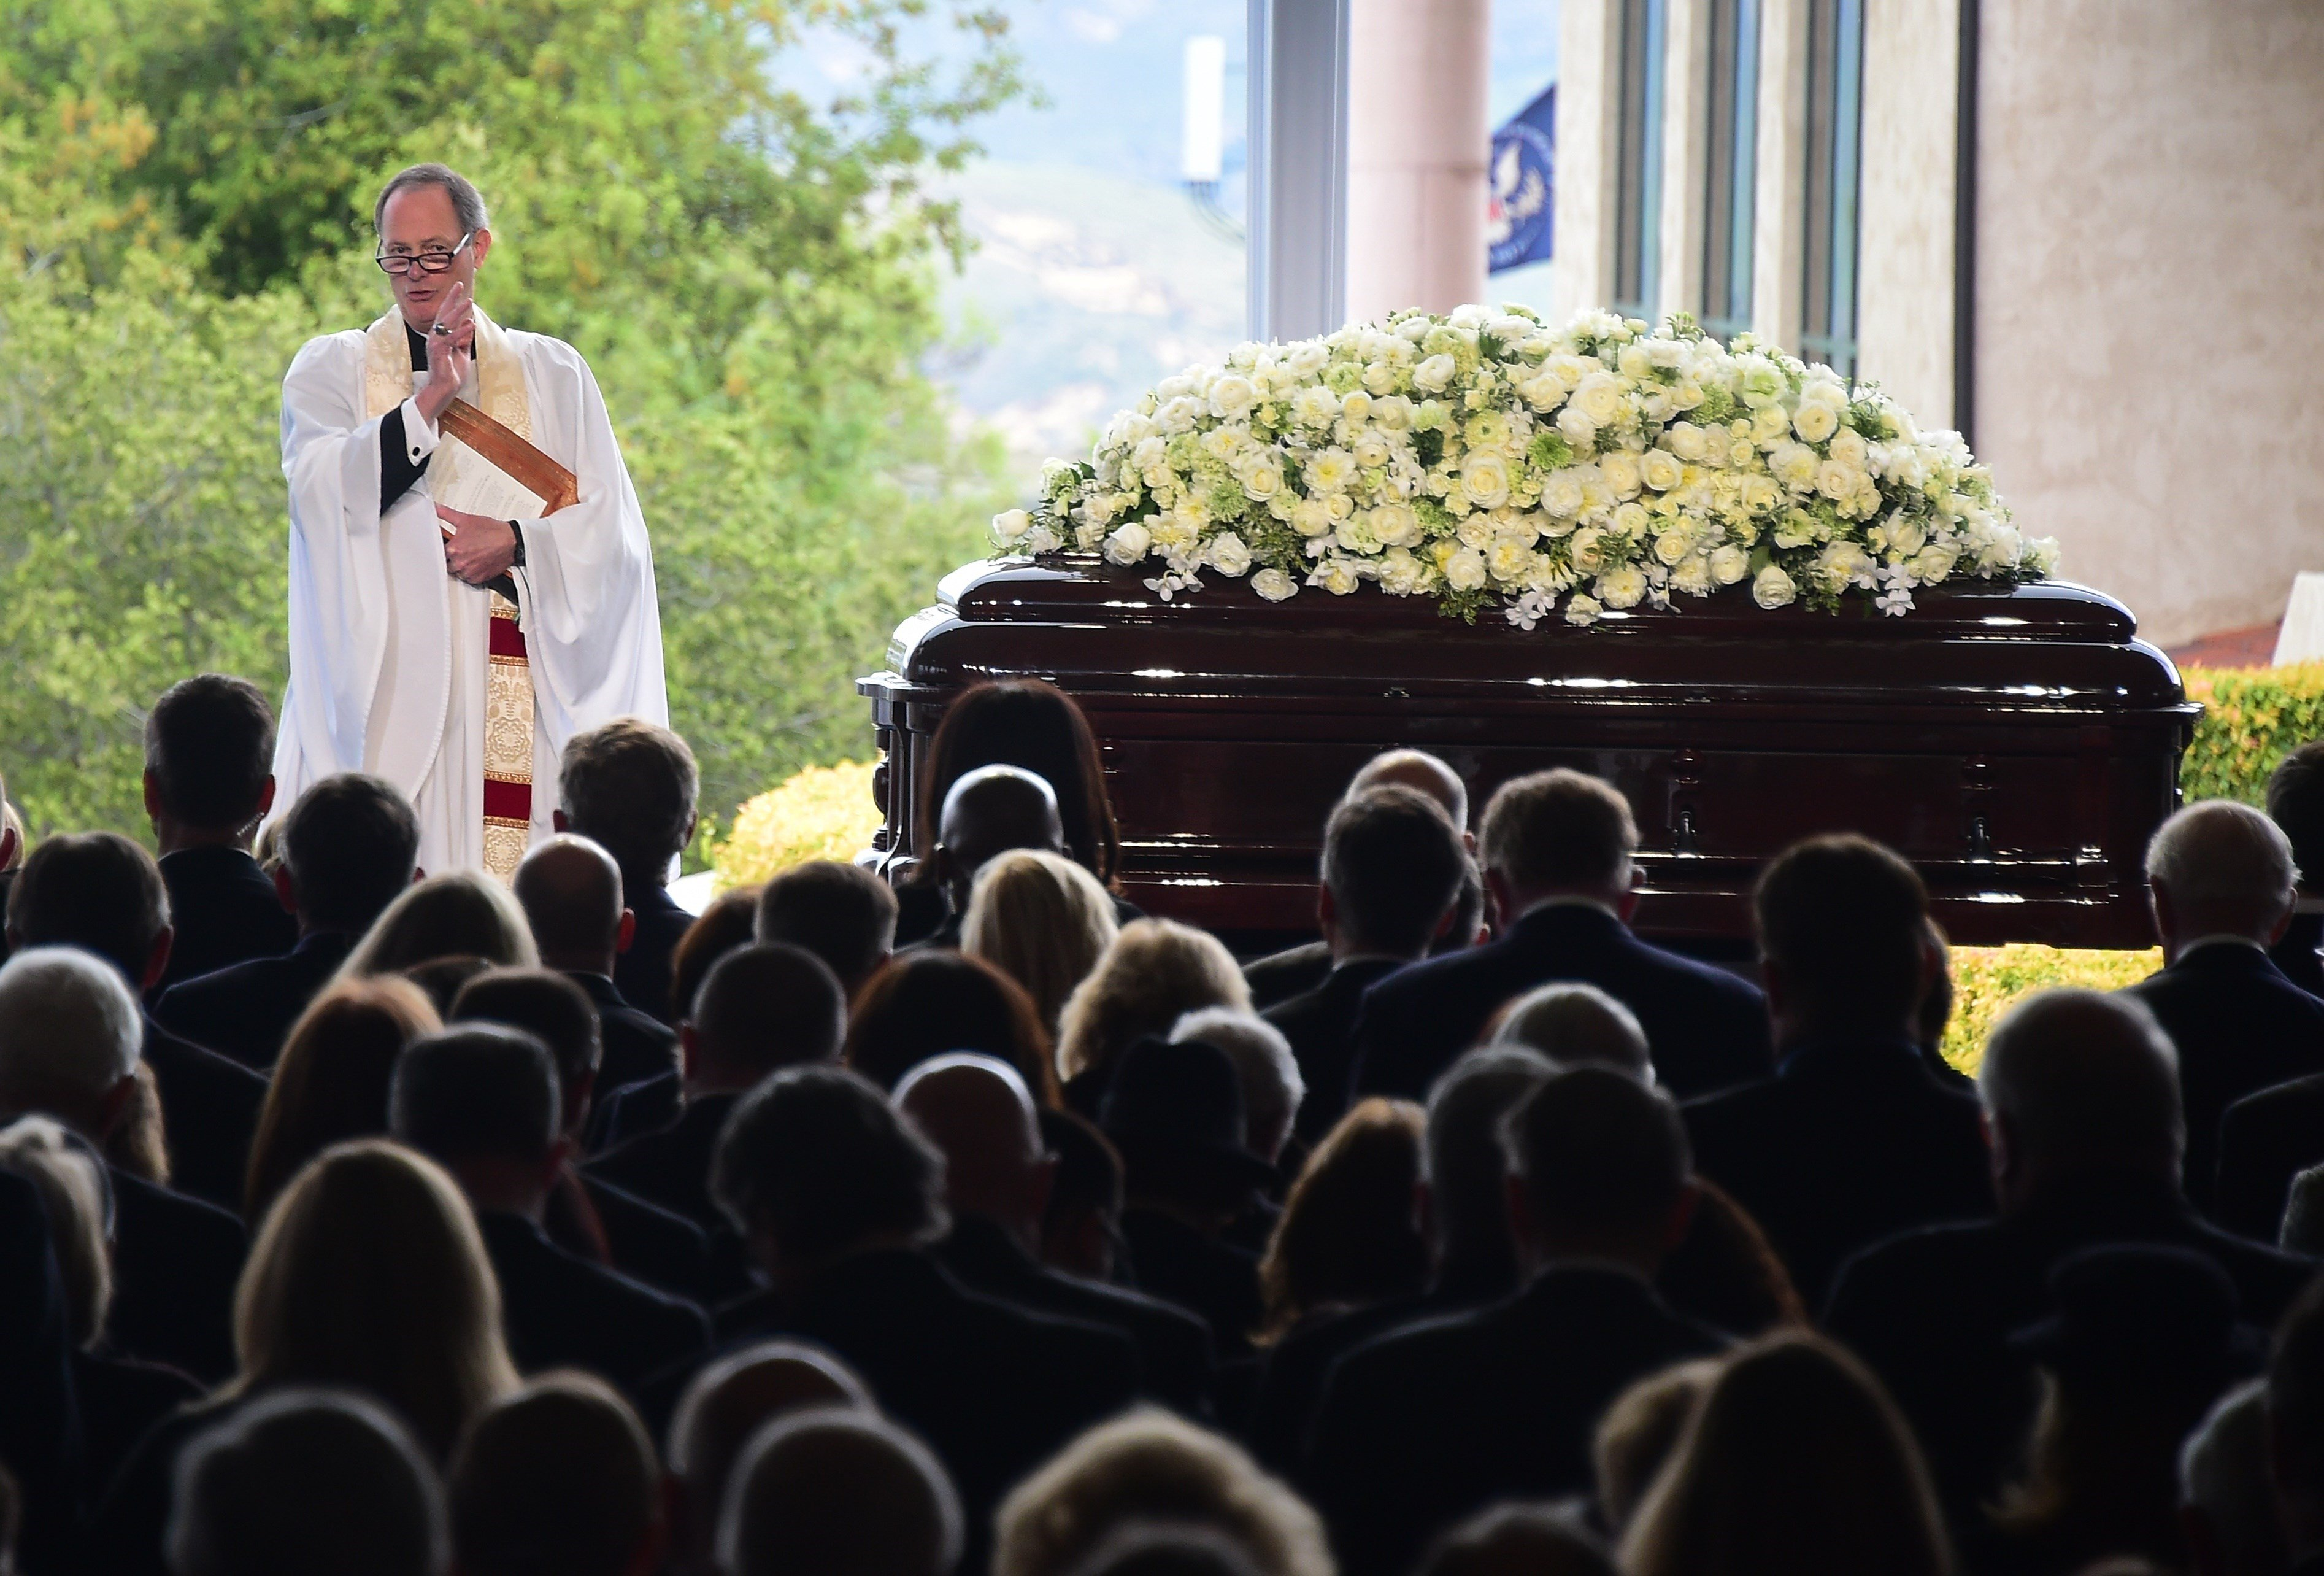 Reverend Stuart Kenworthy blesses the audience during the funeral service, March 11, 2016.